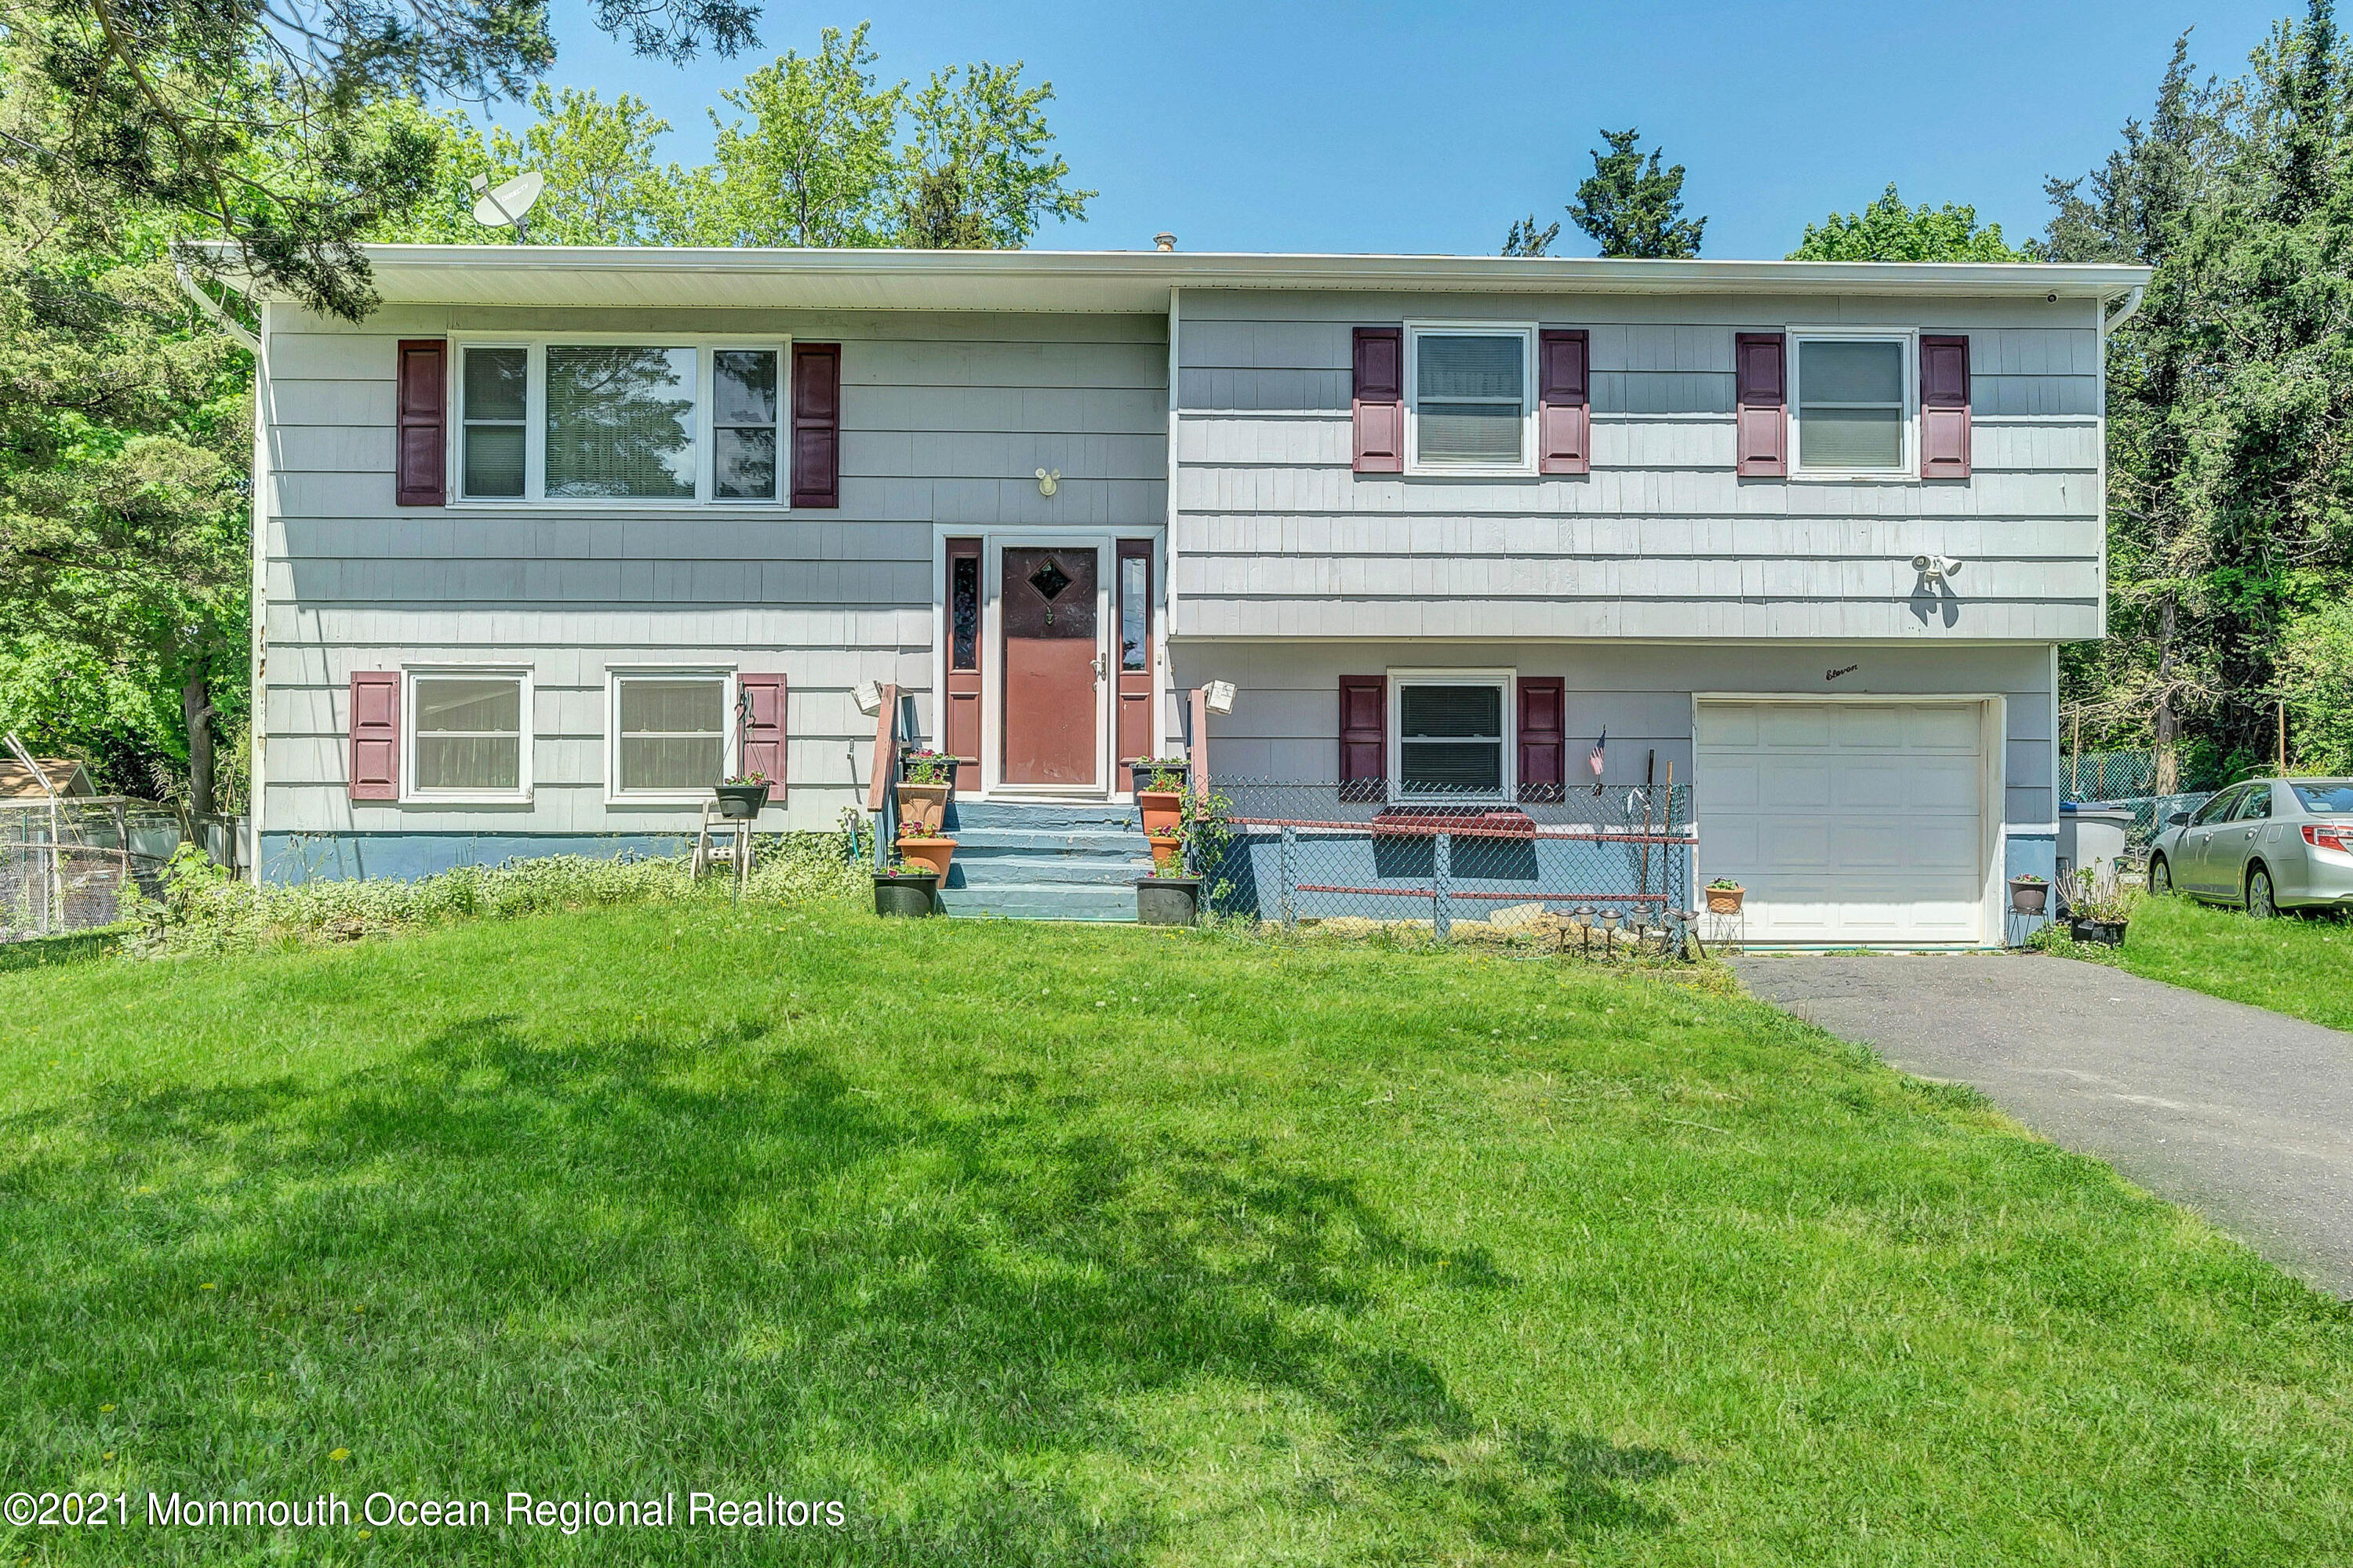 11 Pleasant Court, Toms River, New Jersey 08753, 4 Bedrooms Bedrooms, ,2 BathroomsBathrooms,Single Family,For Sale,11 Pleasant Court,2,22114121